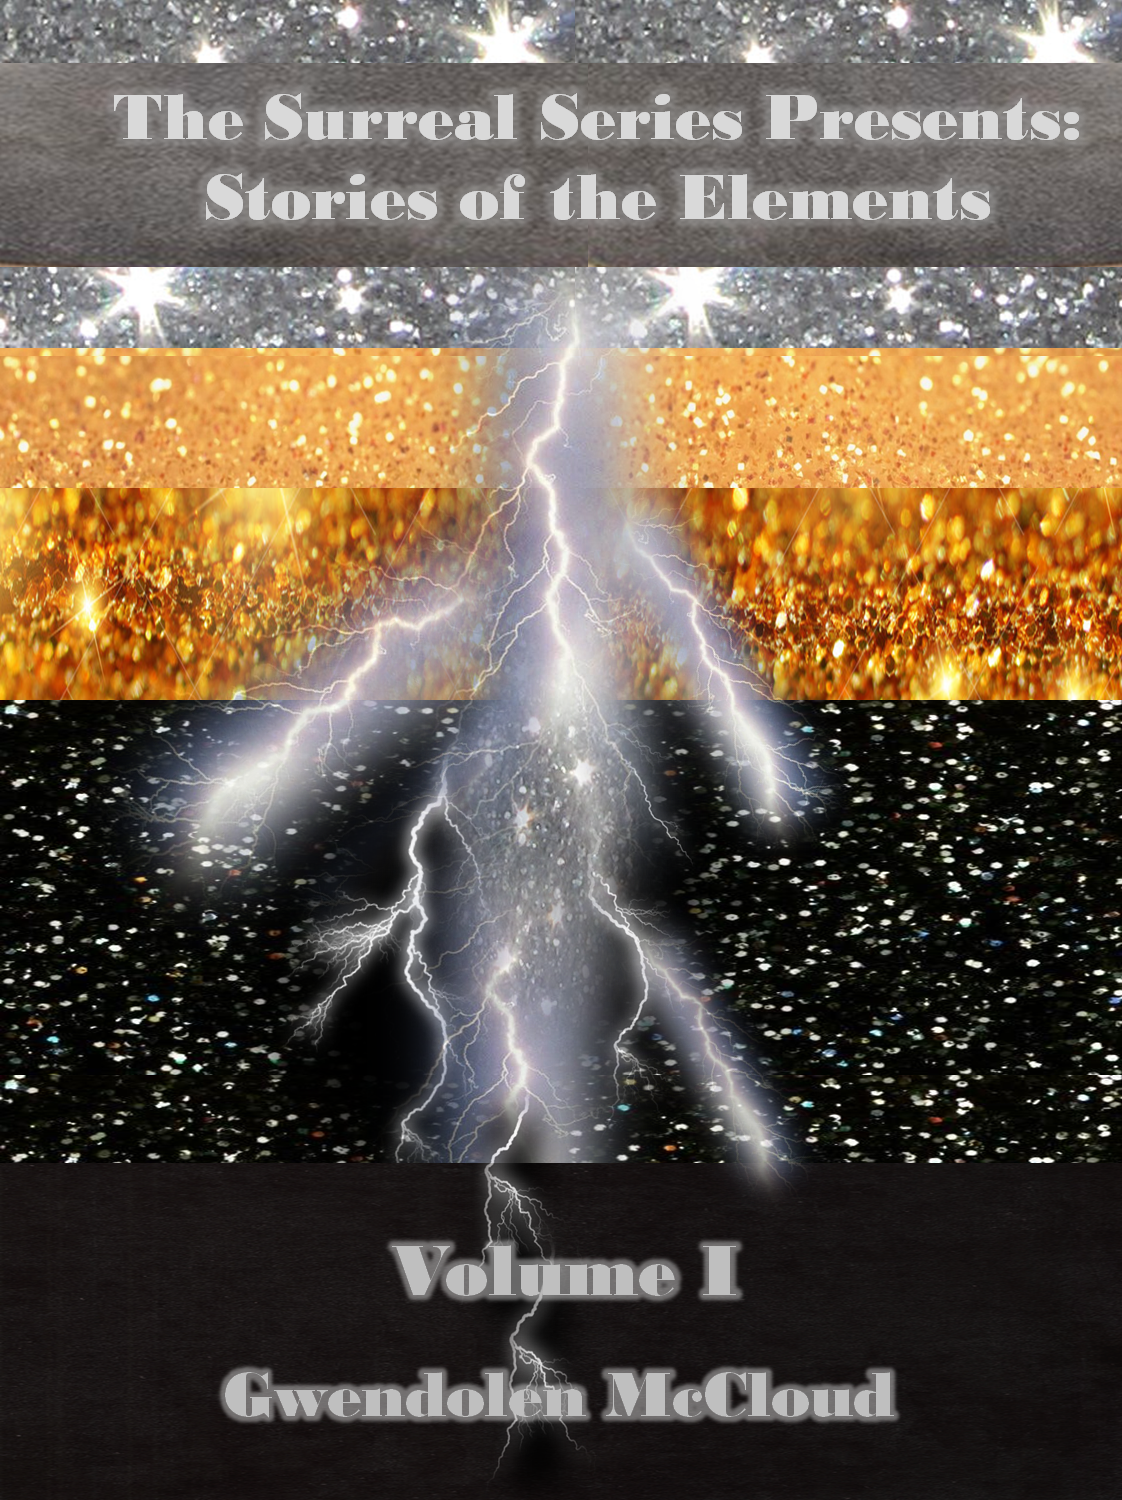 Elements - Lightning - Vol. I.png